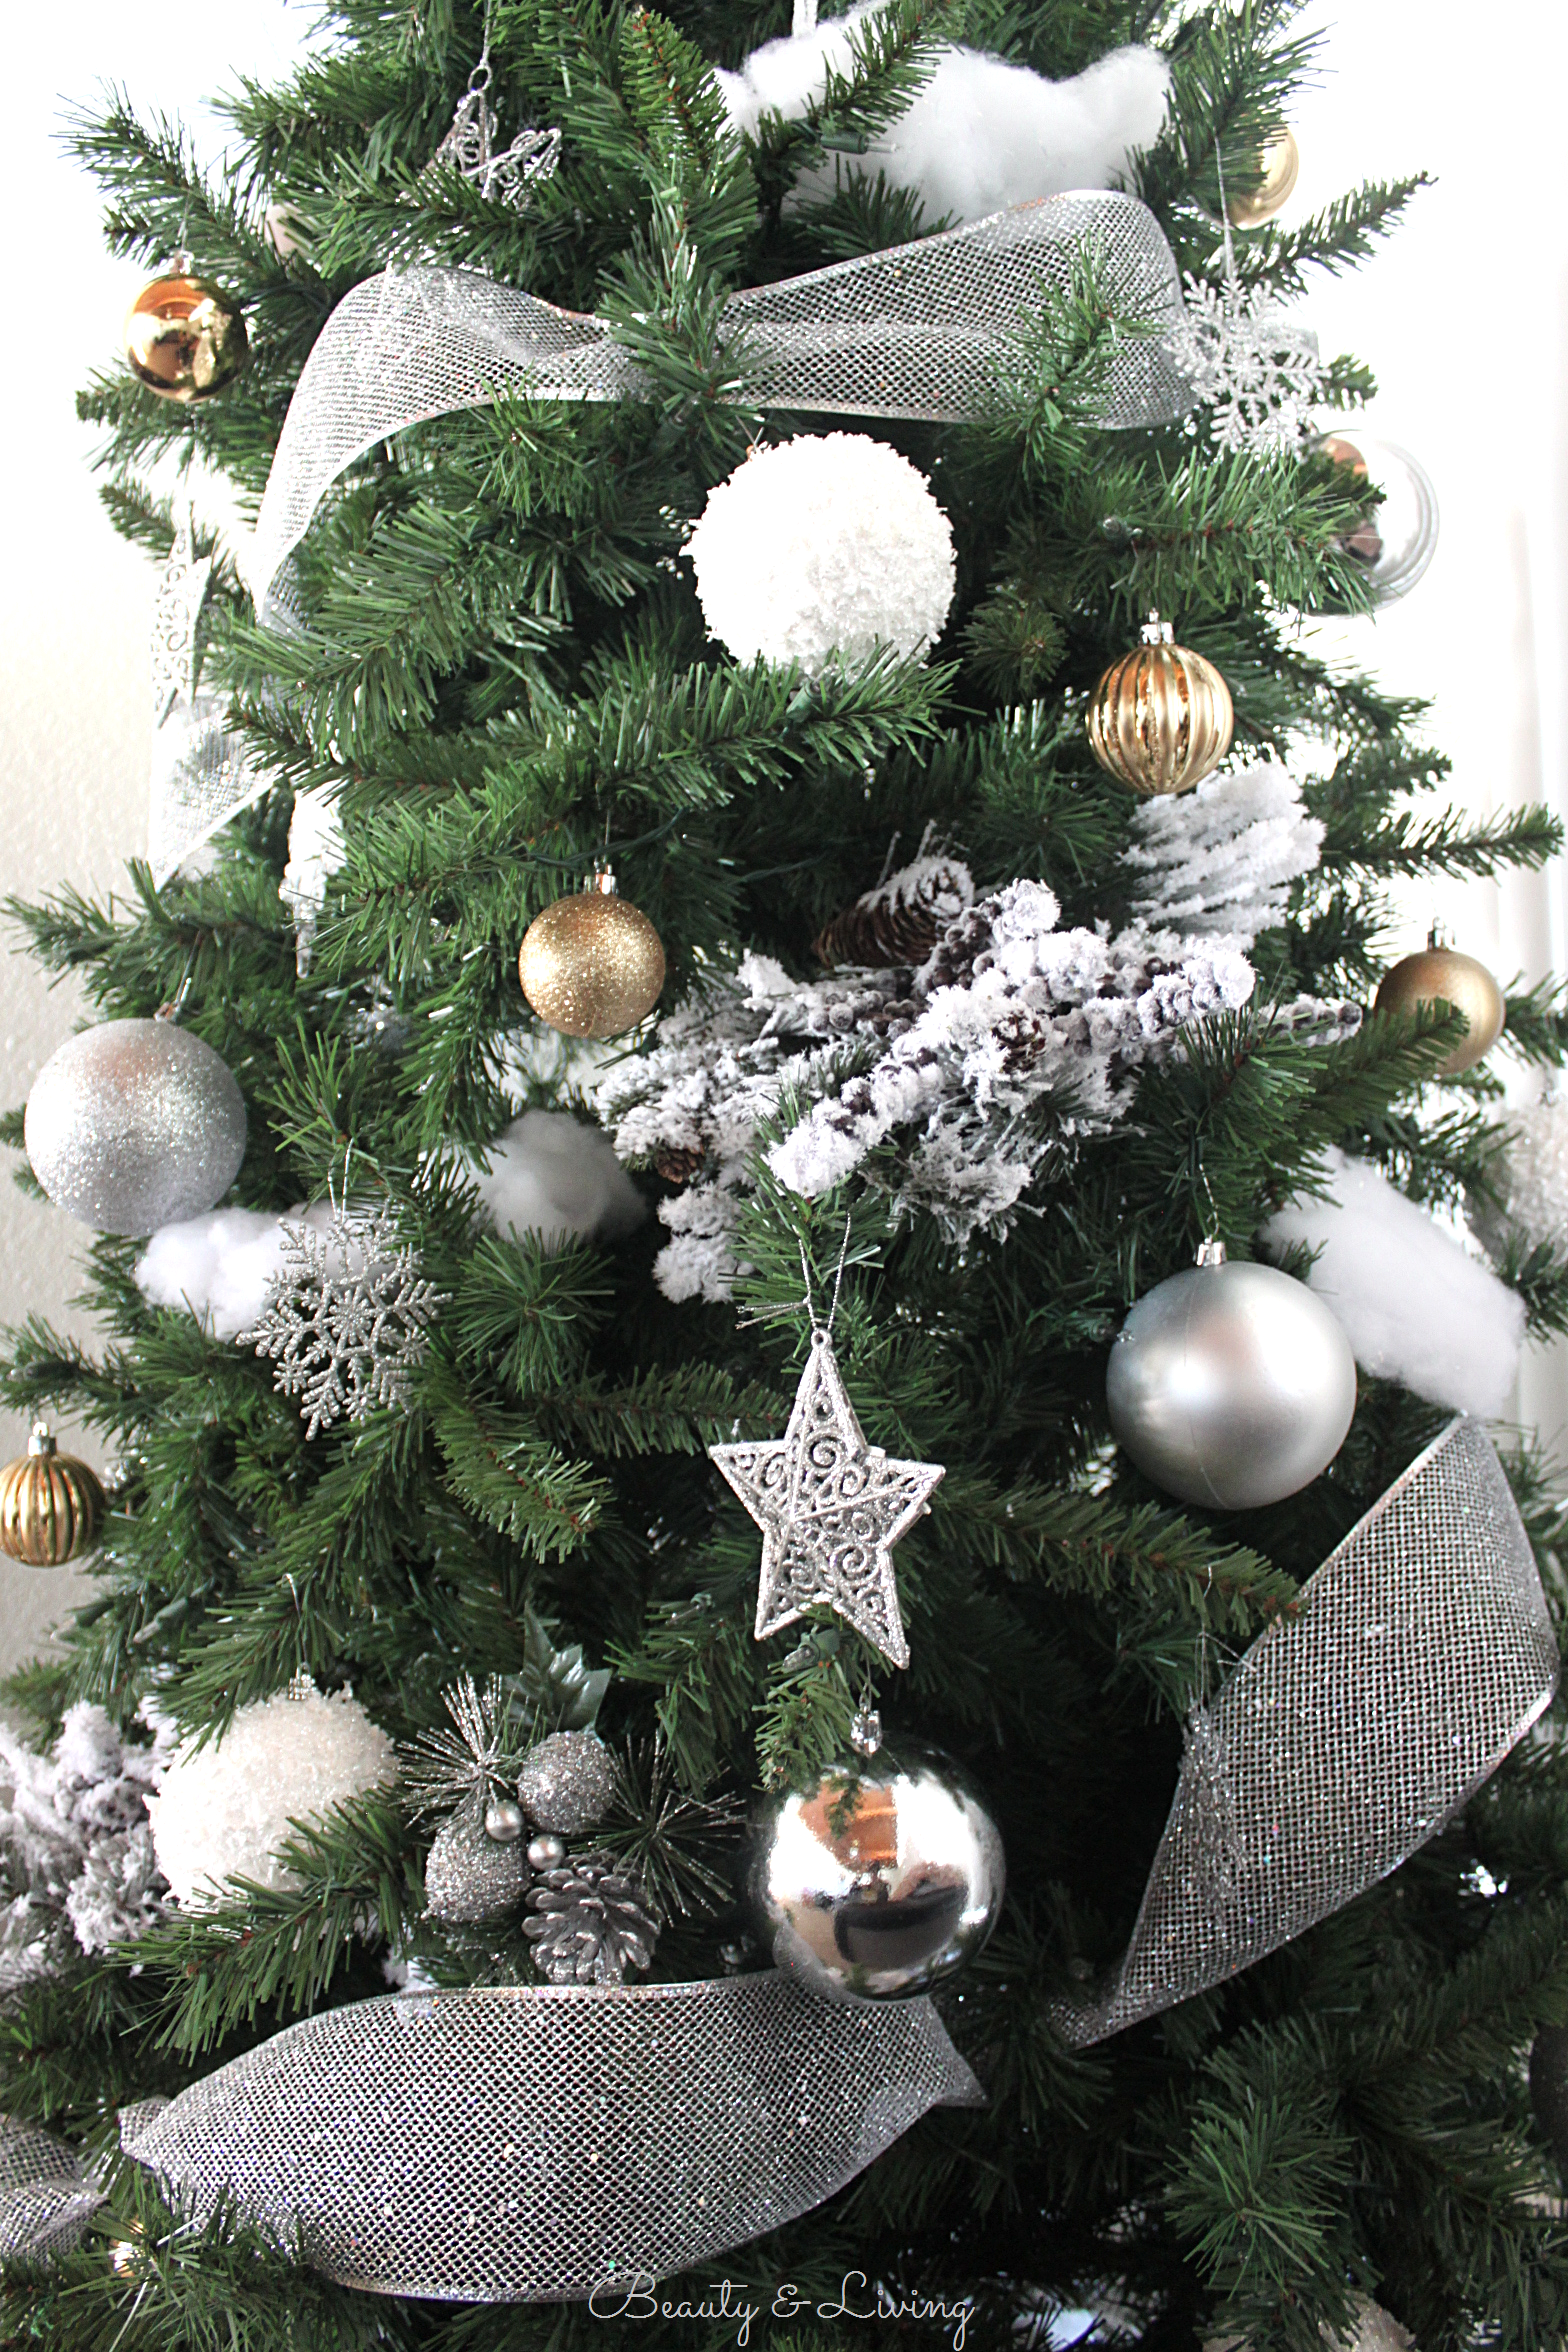 Why do we decorate our houses at christmas - The Theme Is So Magical Yet So Neutral And We Already Had So Many Things To Use From Our Previous Christmases Together Silver Gold And Of Course White